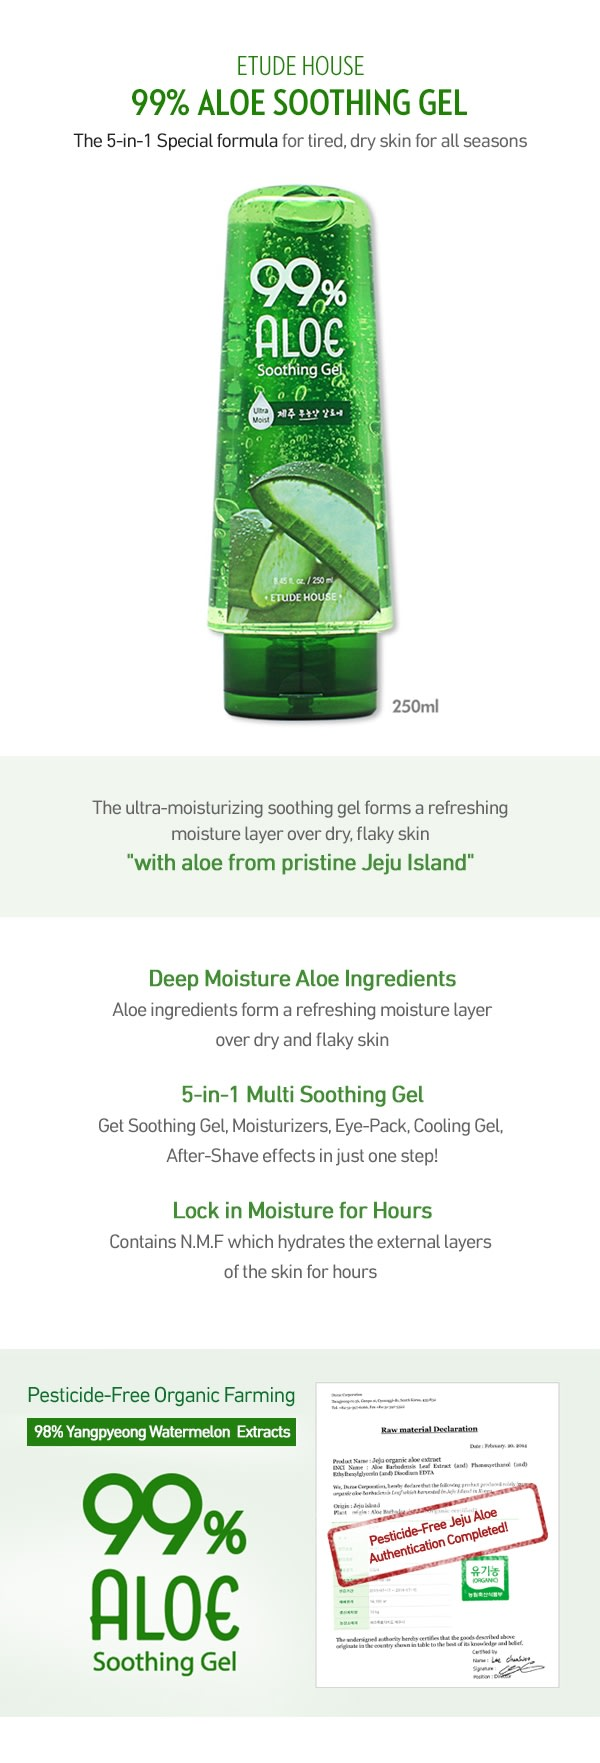 99% Aloe Soothing Gel 250ml How to Use Description Ingredients